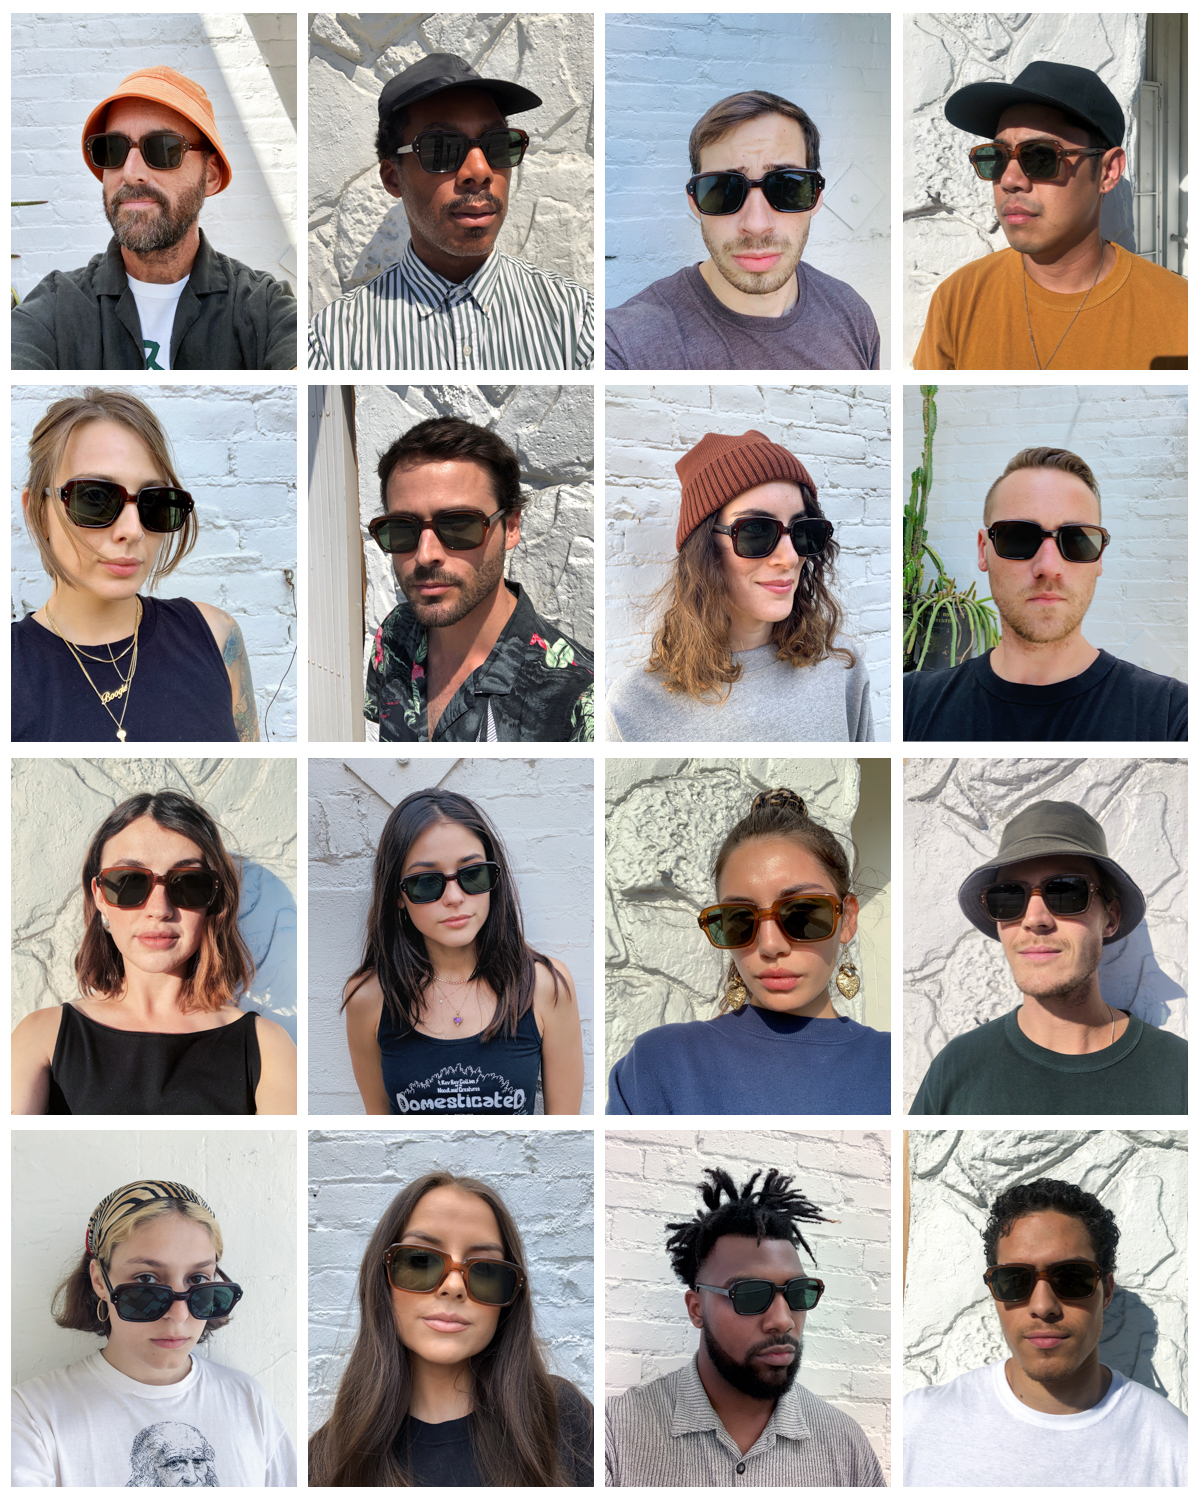 Grid of images of people